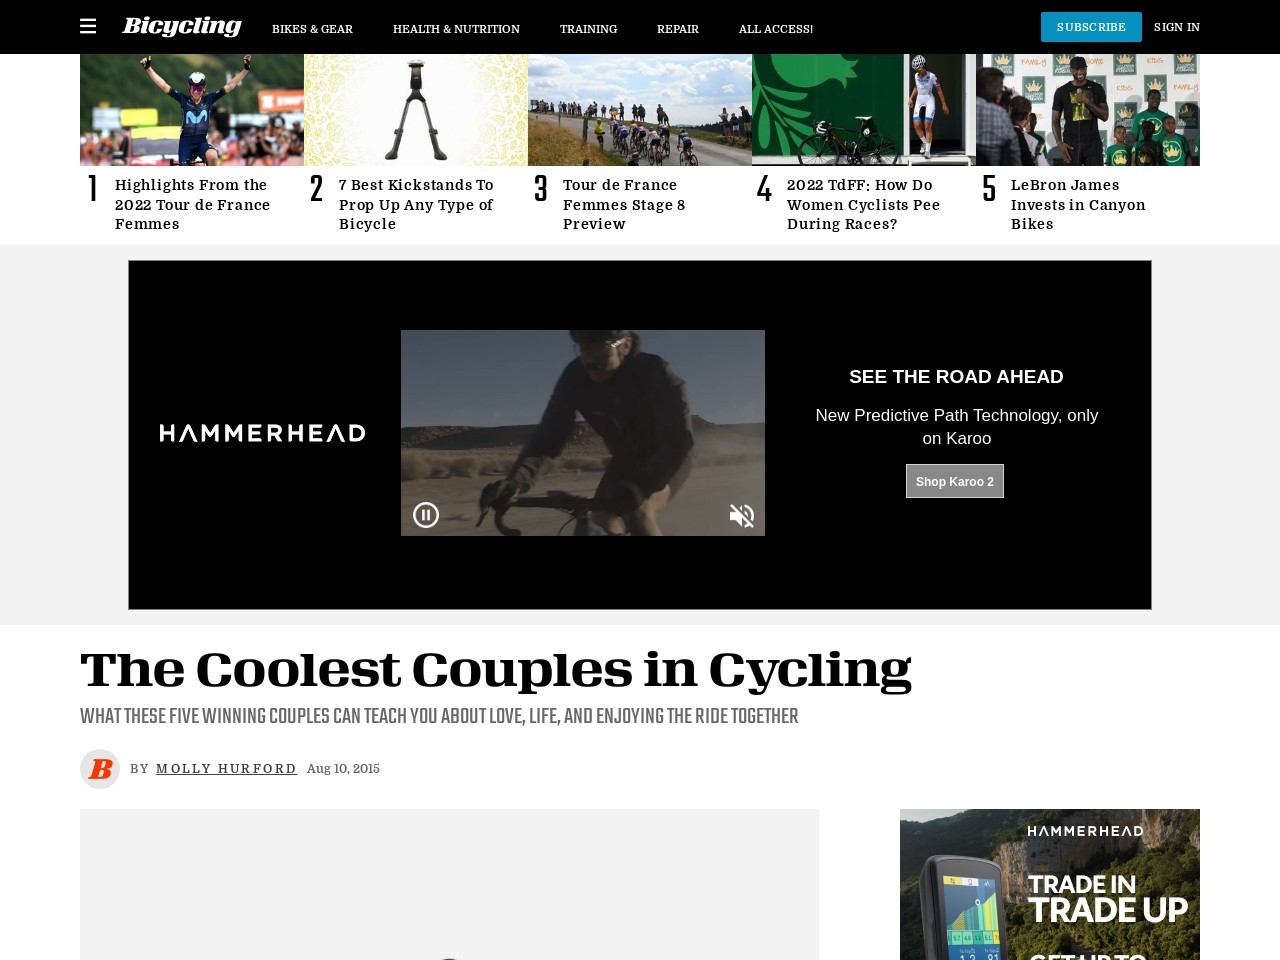 The Coolest Couples in Cycling | Bicycling